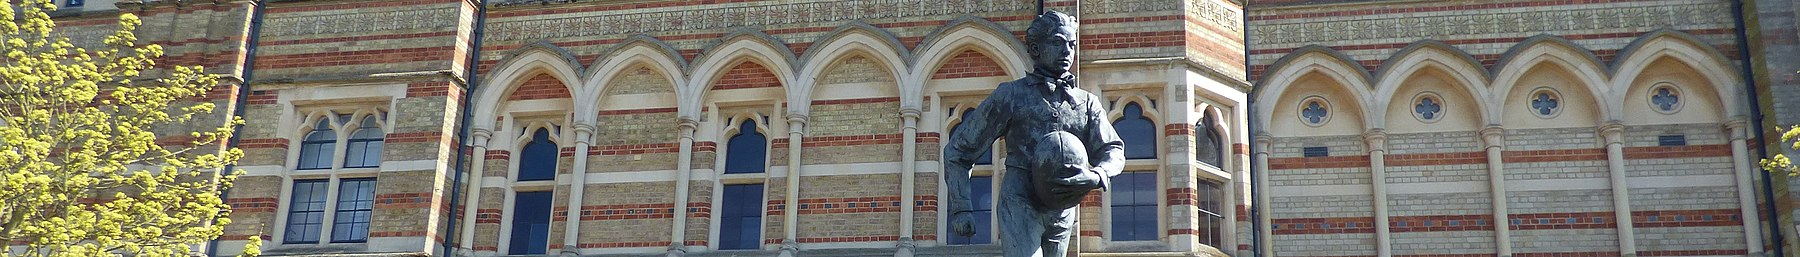 Rugby banner Rugby School and statue of William Webb Ellis.jpg